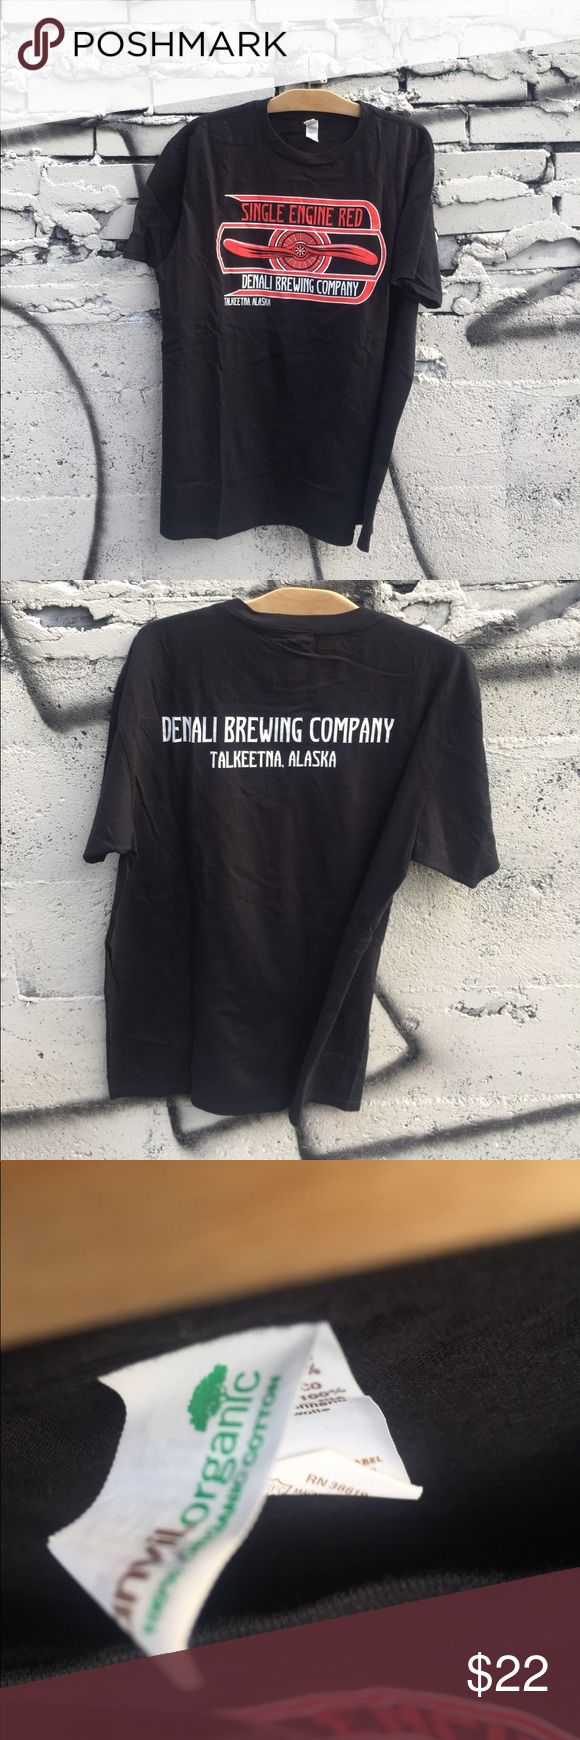 Single Engine Red Brewery Talkeetna Alaska tshirt This Short Sleeve Tee is made from 100% preshrunk organic cotton and features our Single Engine Red logo on the front. The back reads DENALI BREWING COMPANY / TALKEETNA, ALASKA. Available in Black Shirts Tees - Short Sleeve